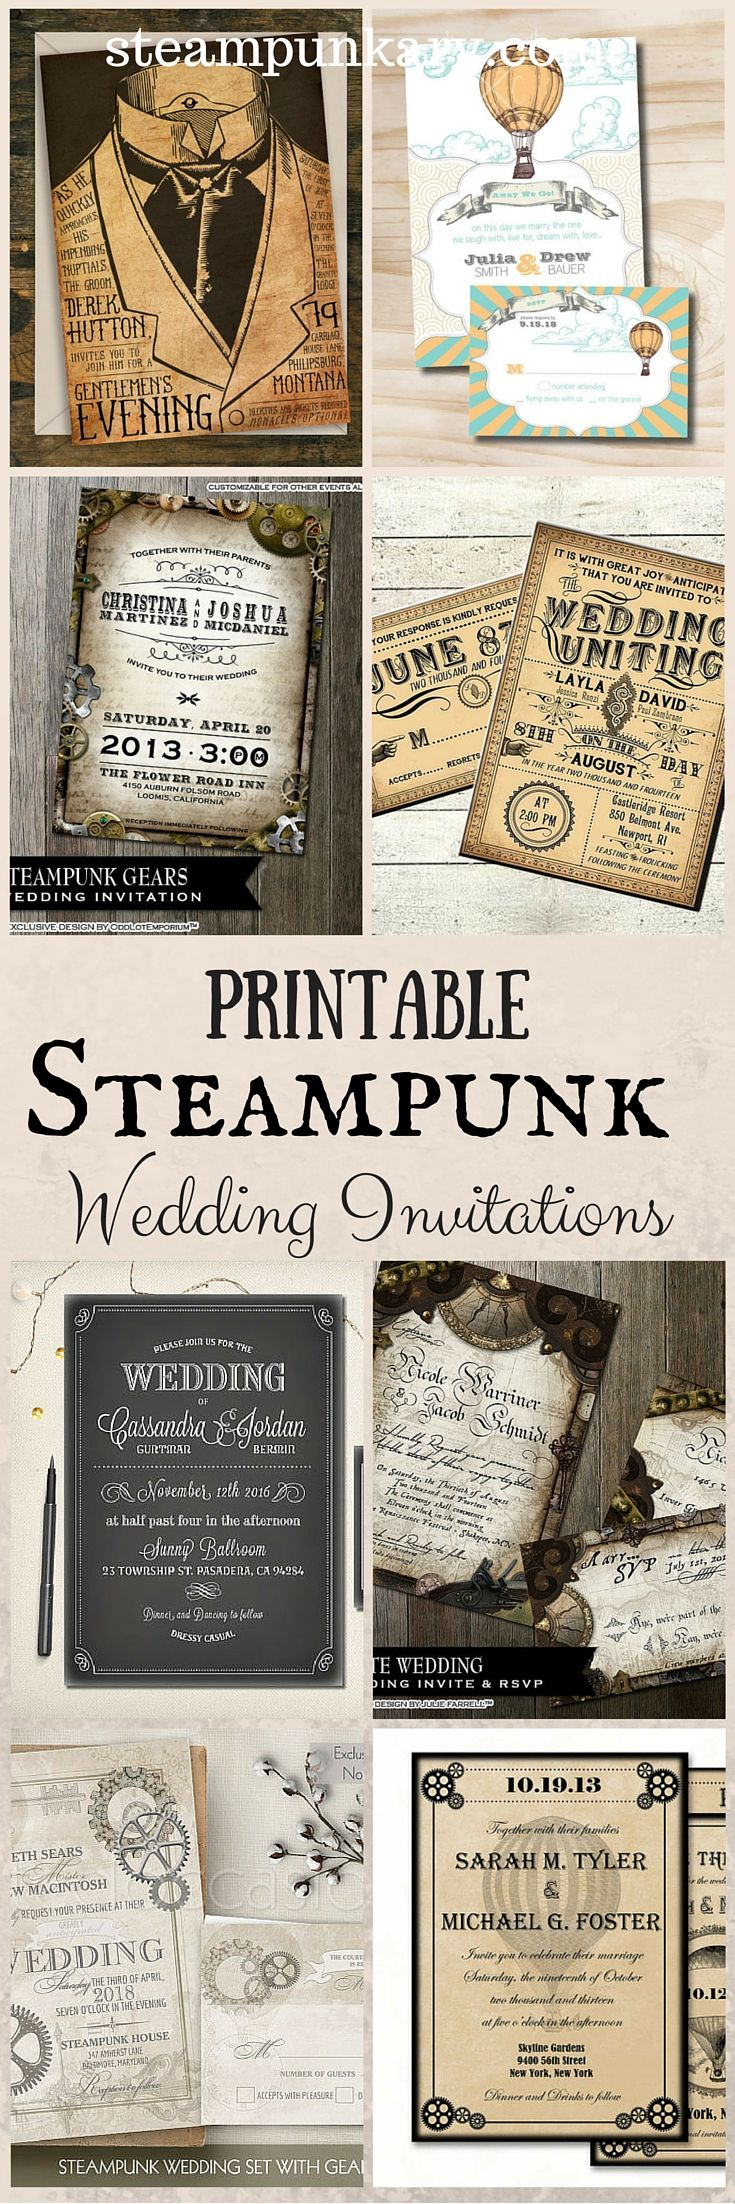 steampunk wedding invitations 1103 best images about steampunk diy mixed media journal 7696